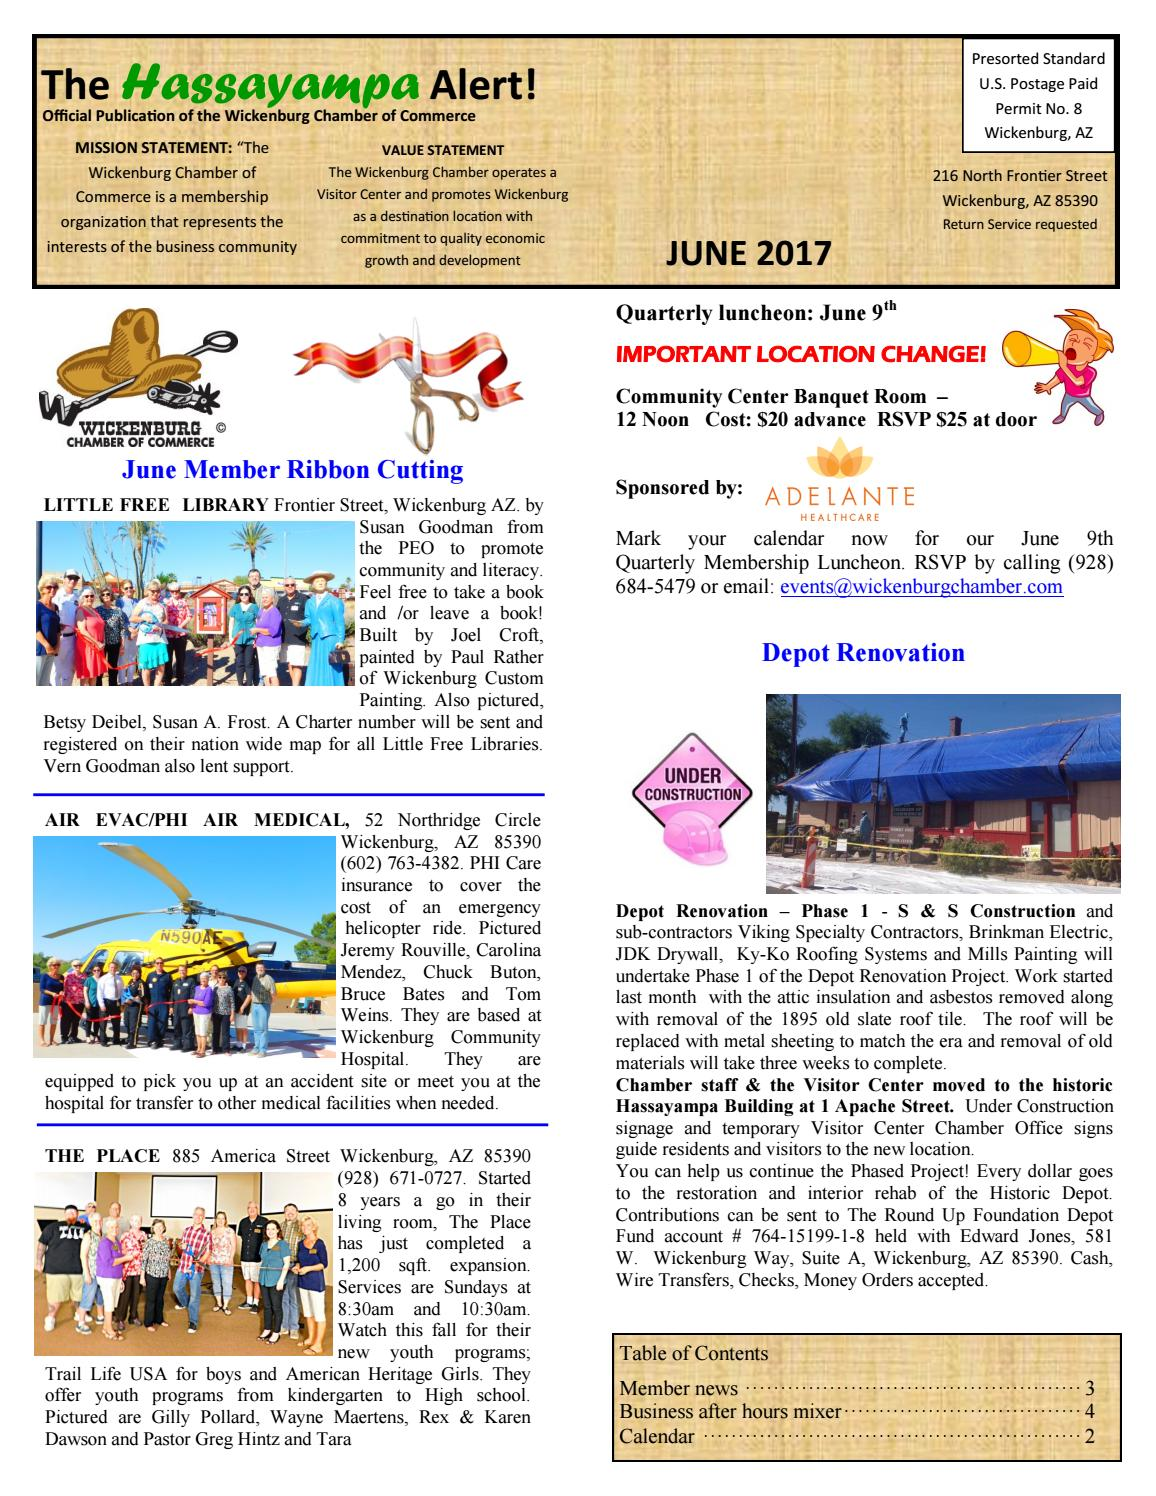 Hassayampa Alert June 2017 By Wickenburg Chamber Of Commerce